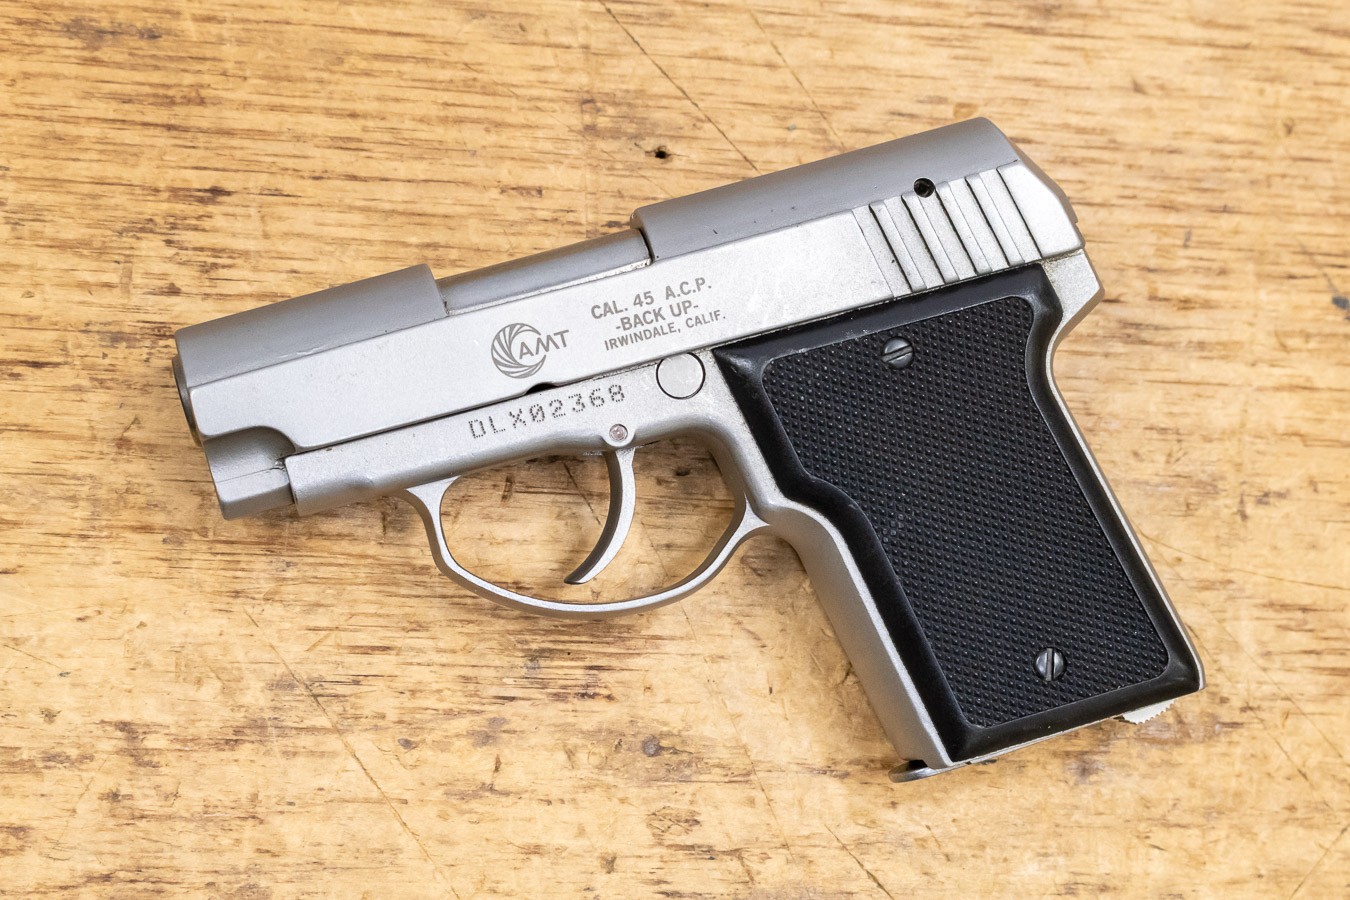 BACK UP 45 ACP USED POLICE TRADE-IN PISTOL